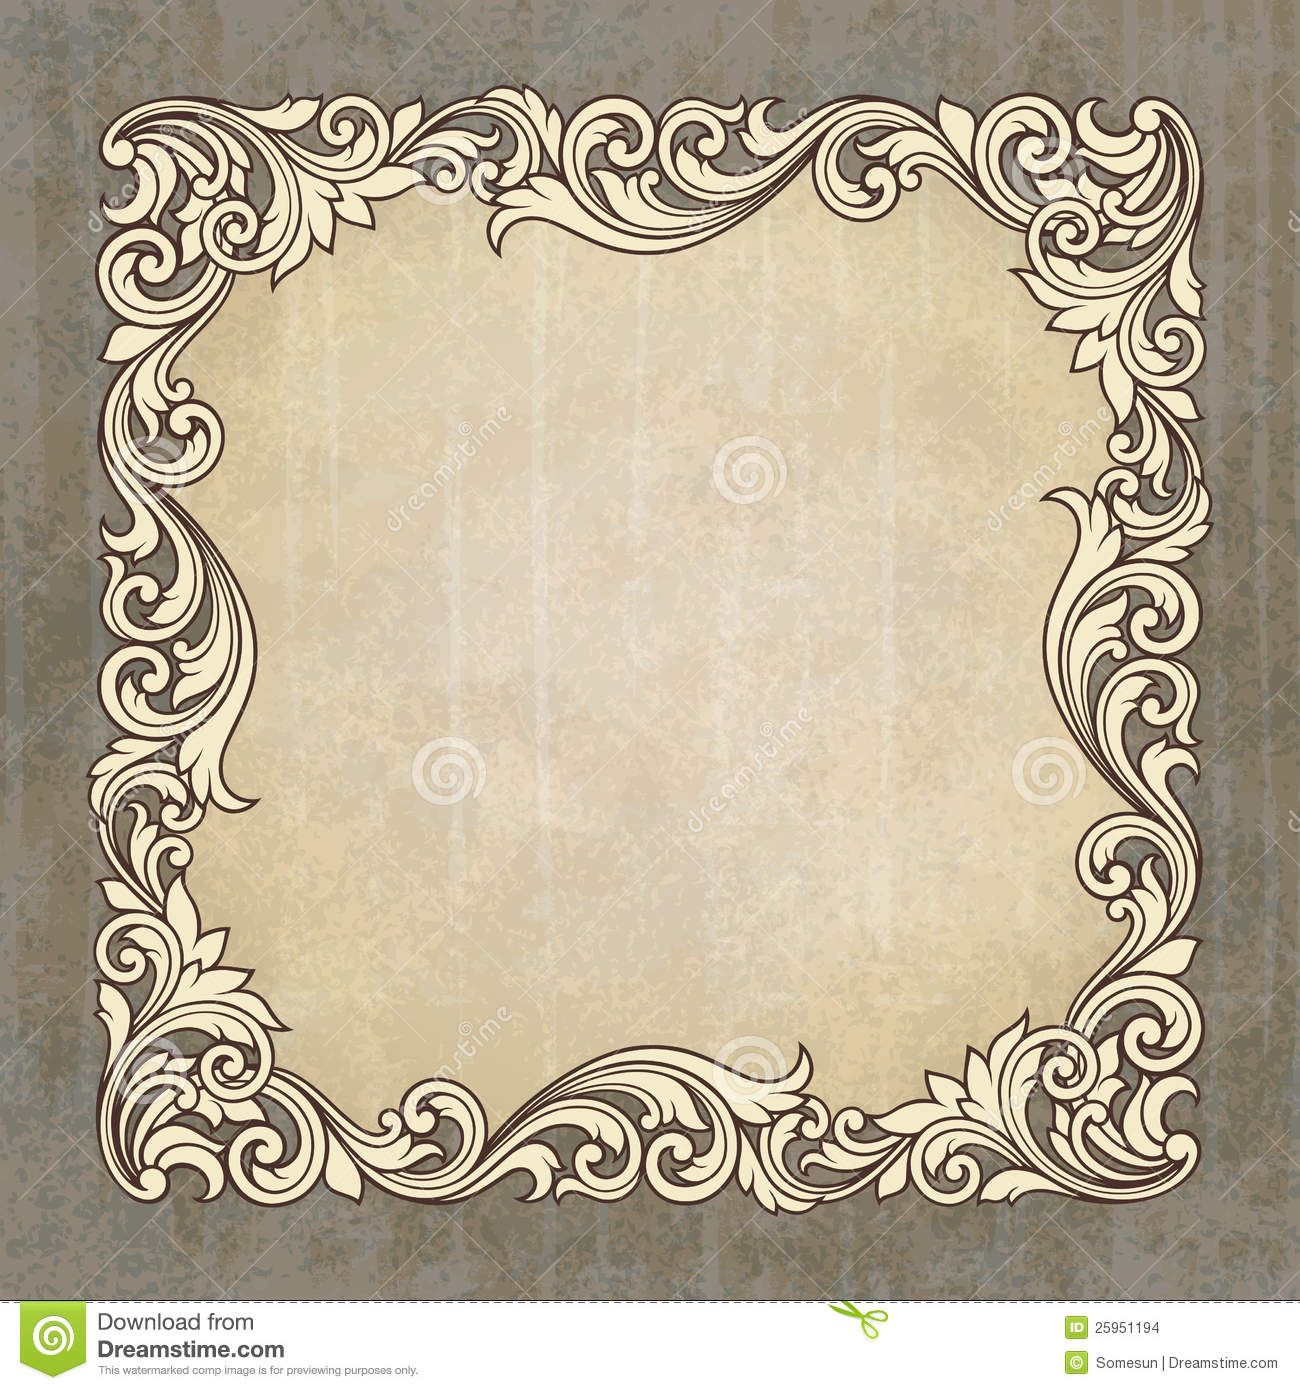 Vector Retro Border Frame At Grunge Background - Download ...